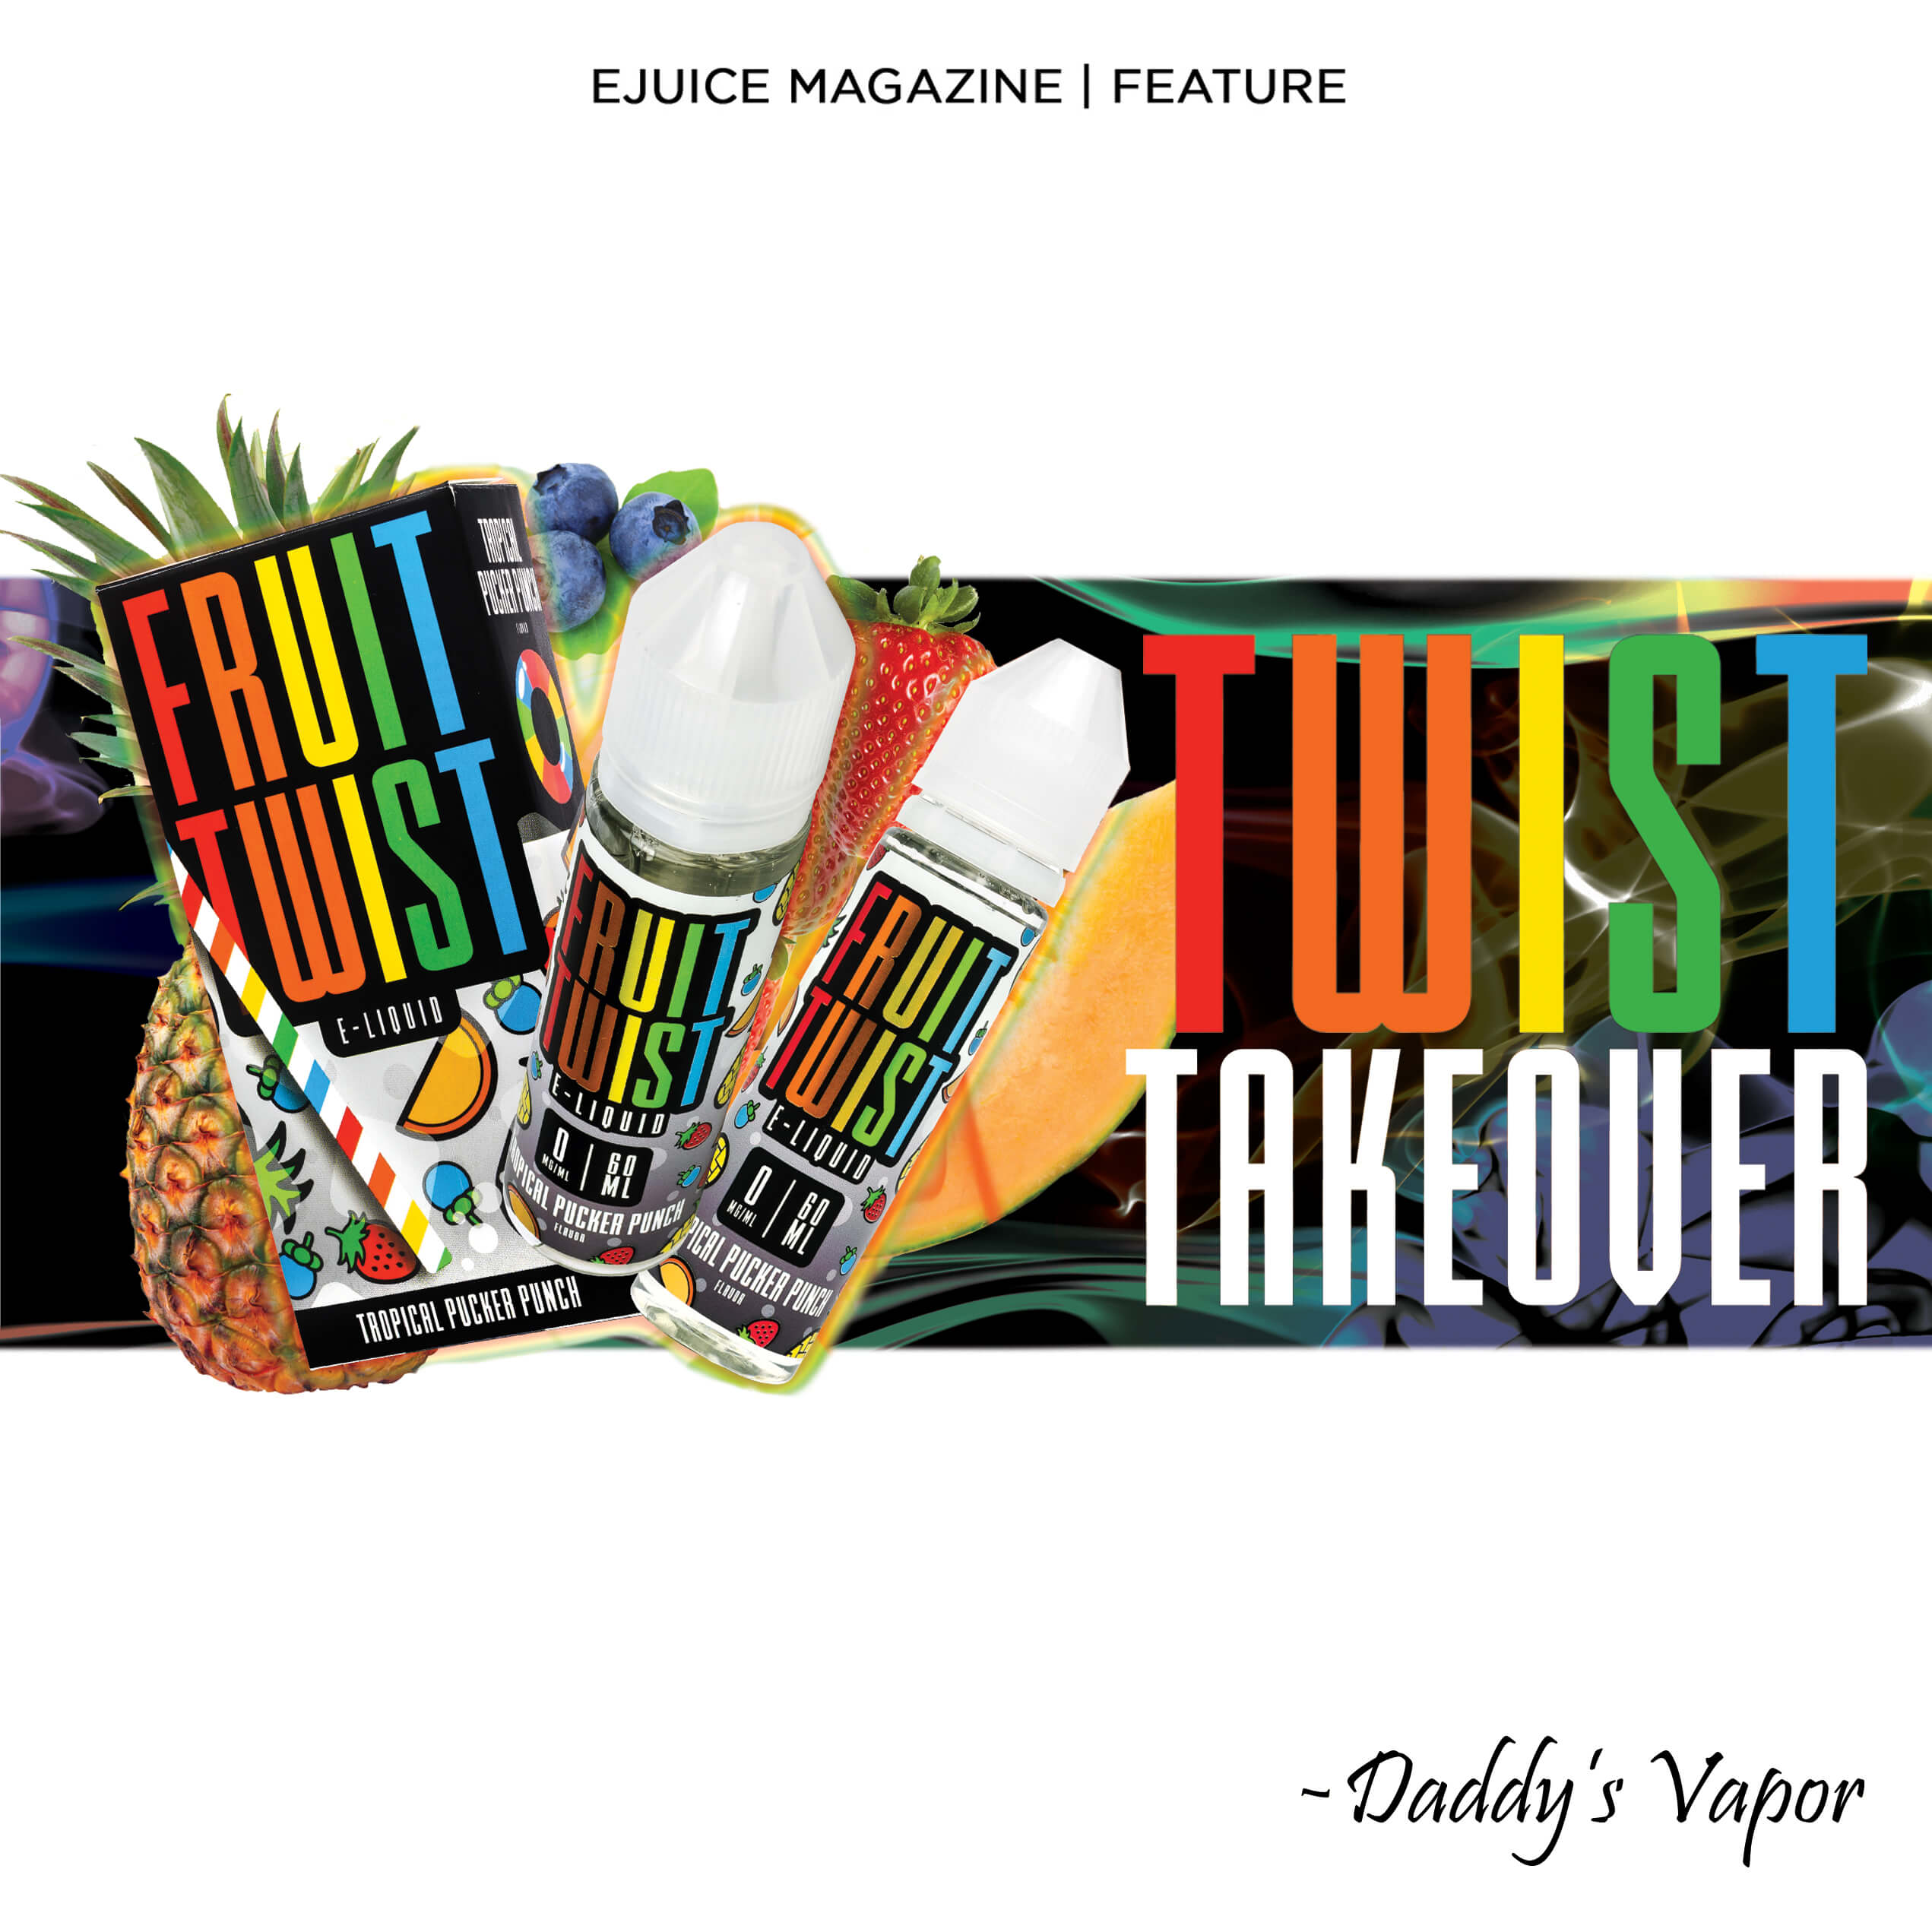 daddys vapor twist eliquid twist takeover featured image eliquid